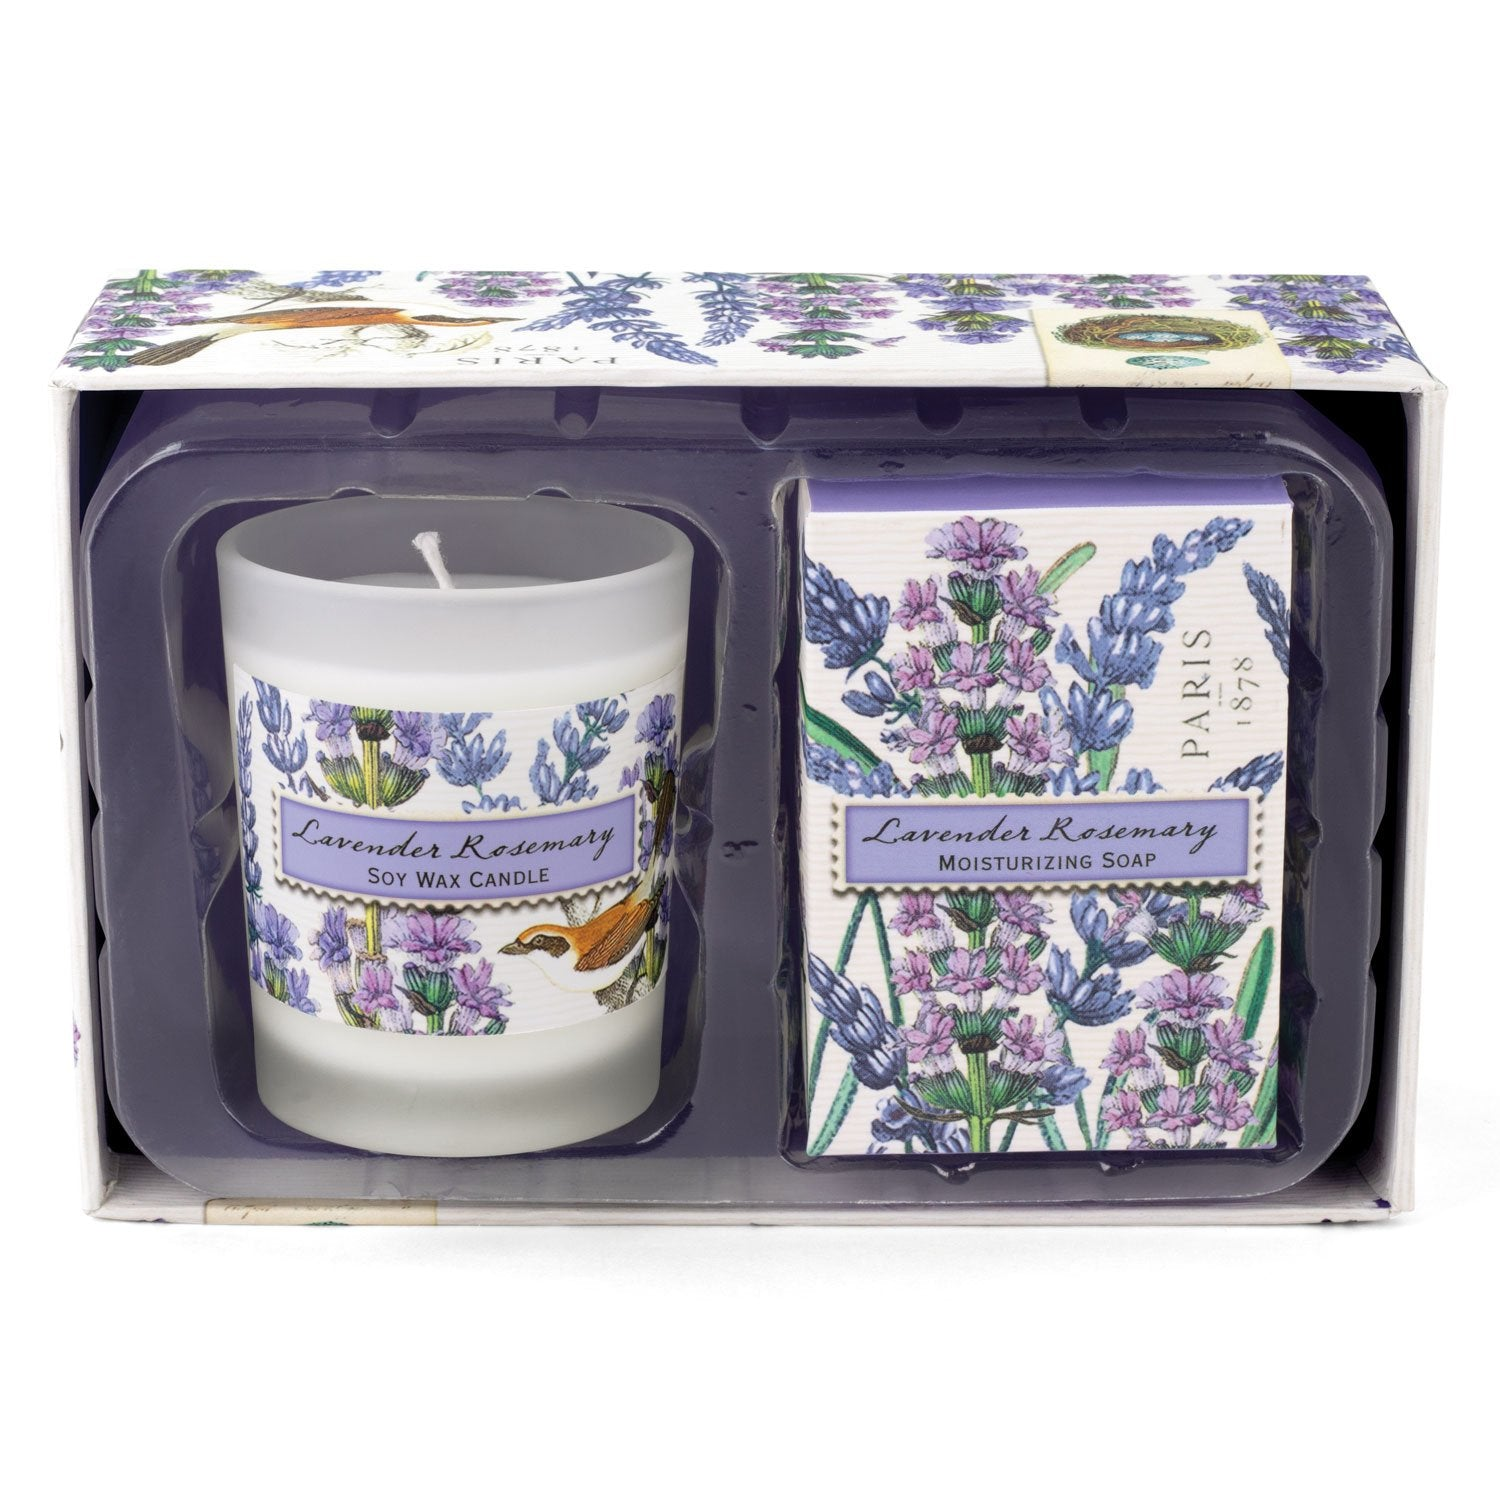 Lavender Rosemary Candle and Soap Gift Set